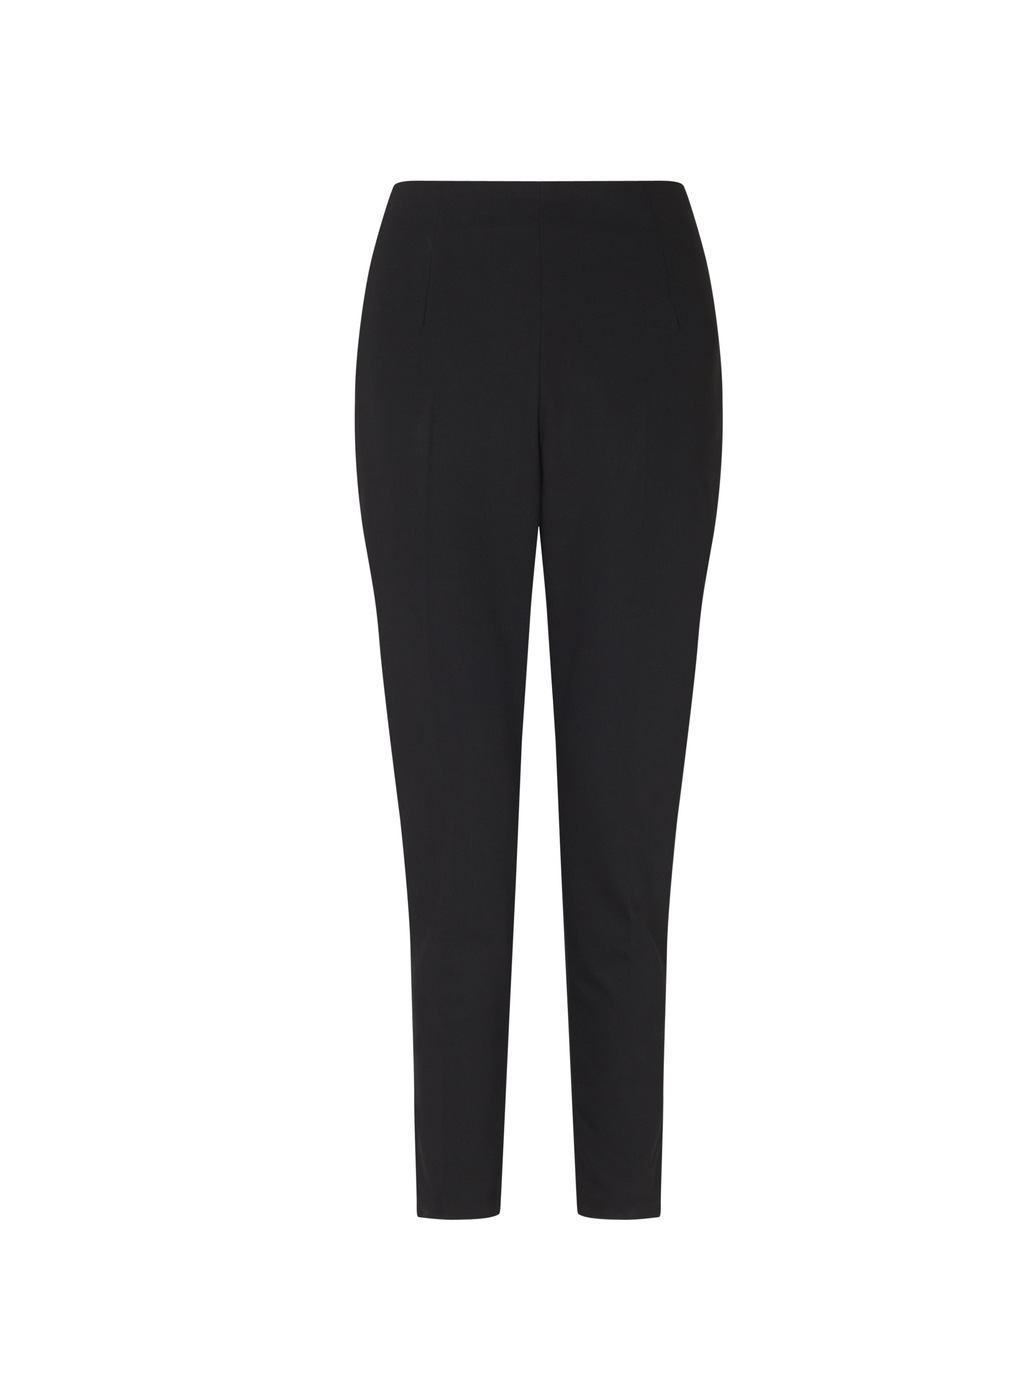 Womenswear Ashcroft Slim Line Pants - pattern: plain; waist: mid/regular rise; predominant colour: black; occasions: evening, work, creative work; length: ankle length; fibres: polyester/polyamide - stretch; fit: slim leg; pattern type: fabric; texture group: woven light midweight; style: standard; pattern size: standard (bottom); wardrobe: basic; season: a/w 2016